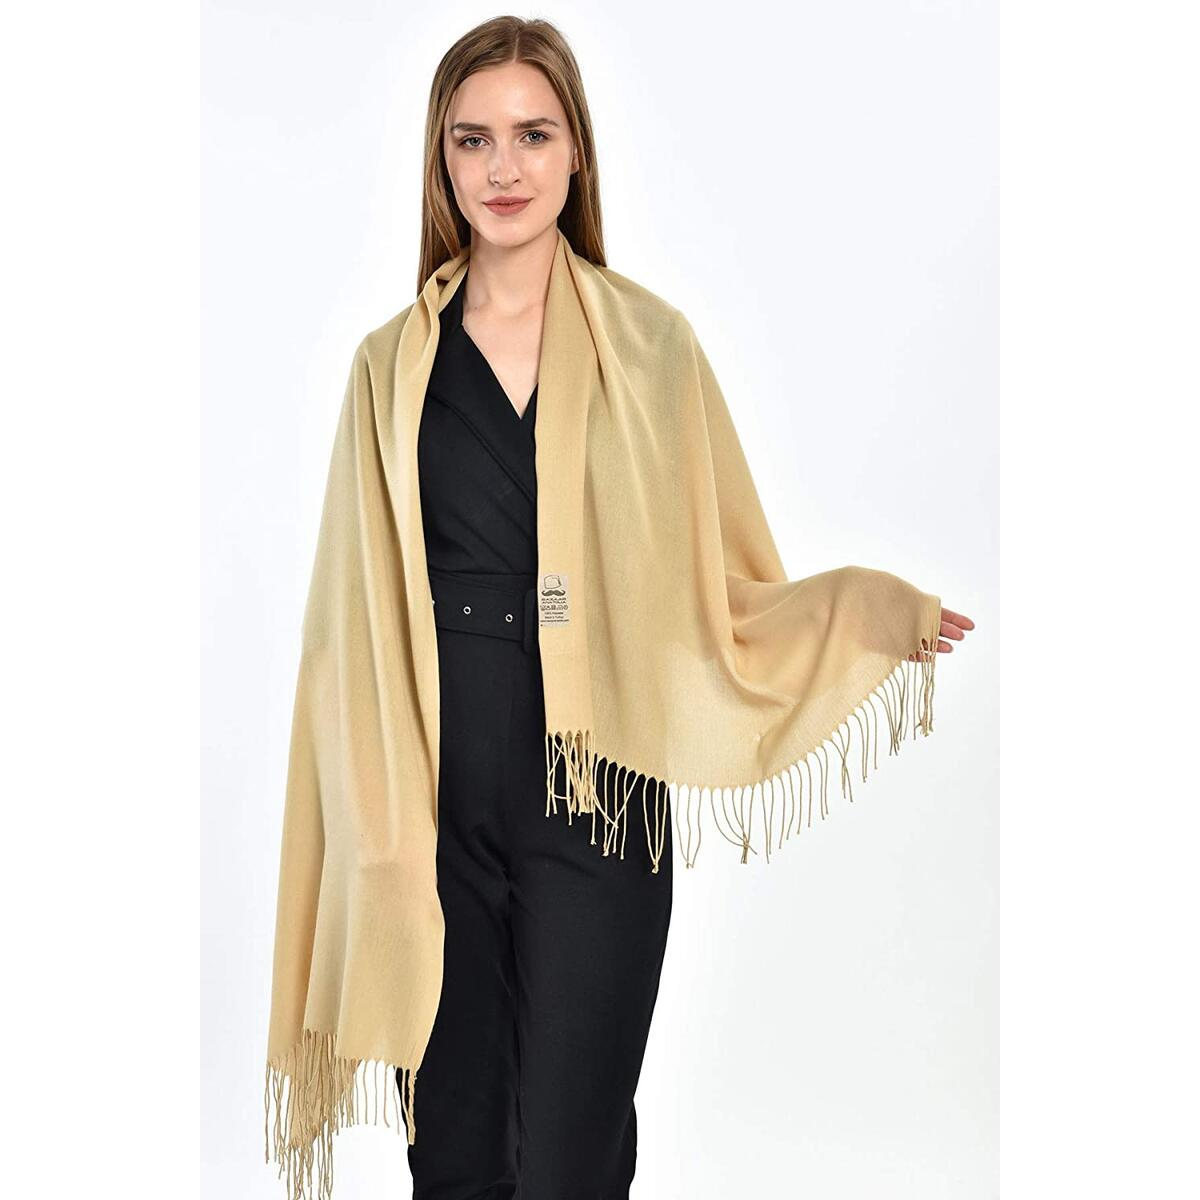 Pashmina Scarfs for Women Shawls and Wraps Soft Lightweight (Cream)